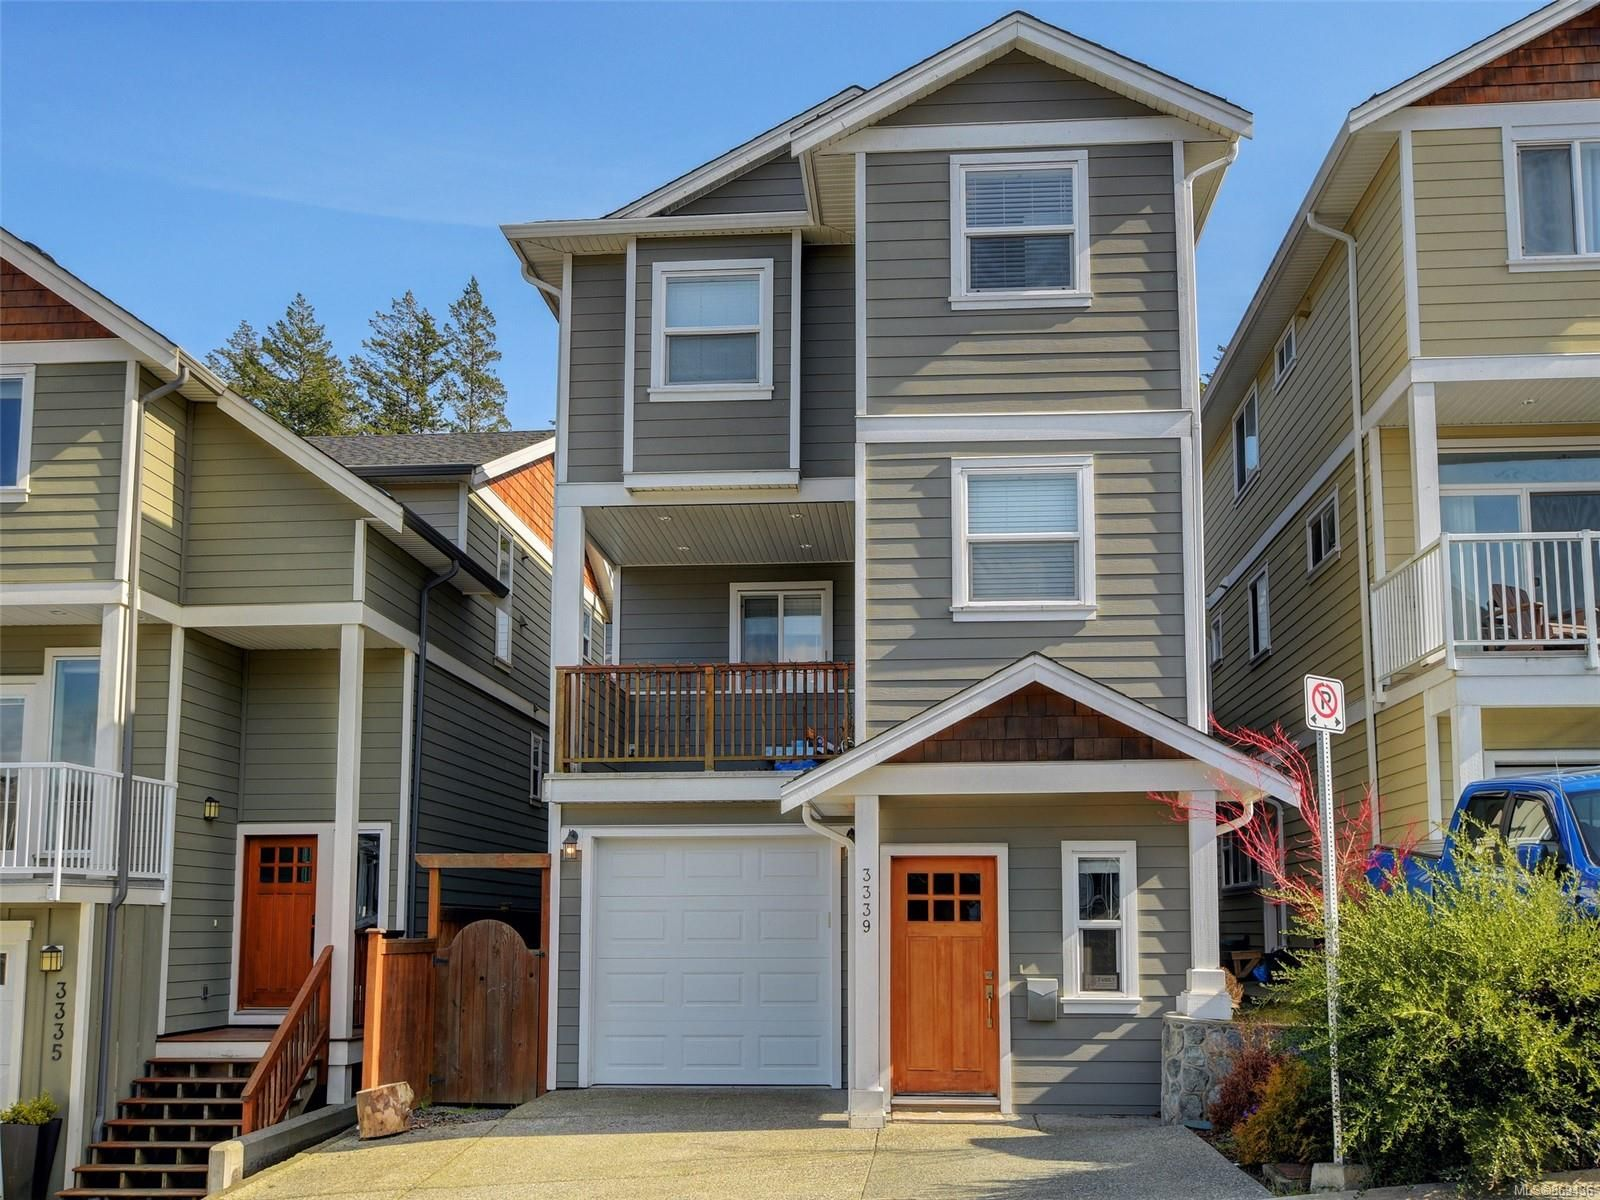 Main Photo: 3339 Turnstone Dr in : La Happy Valley House for sale (Langford)  : MLS®# 869436